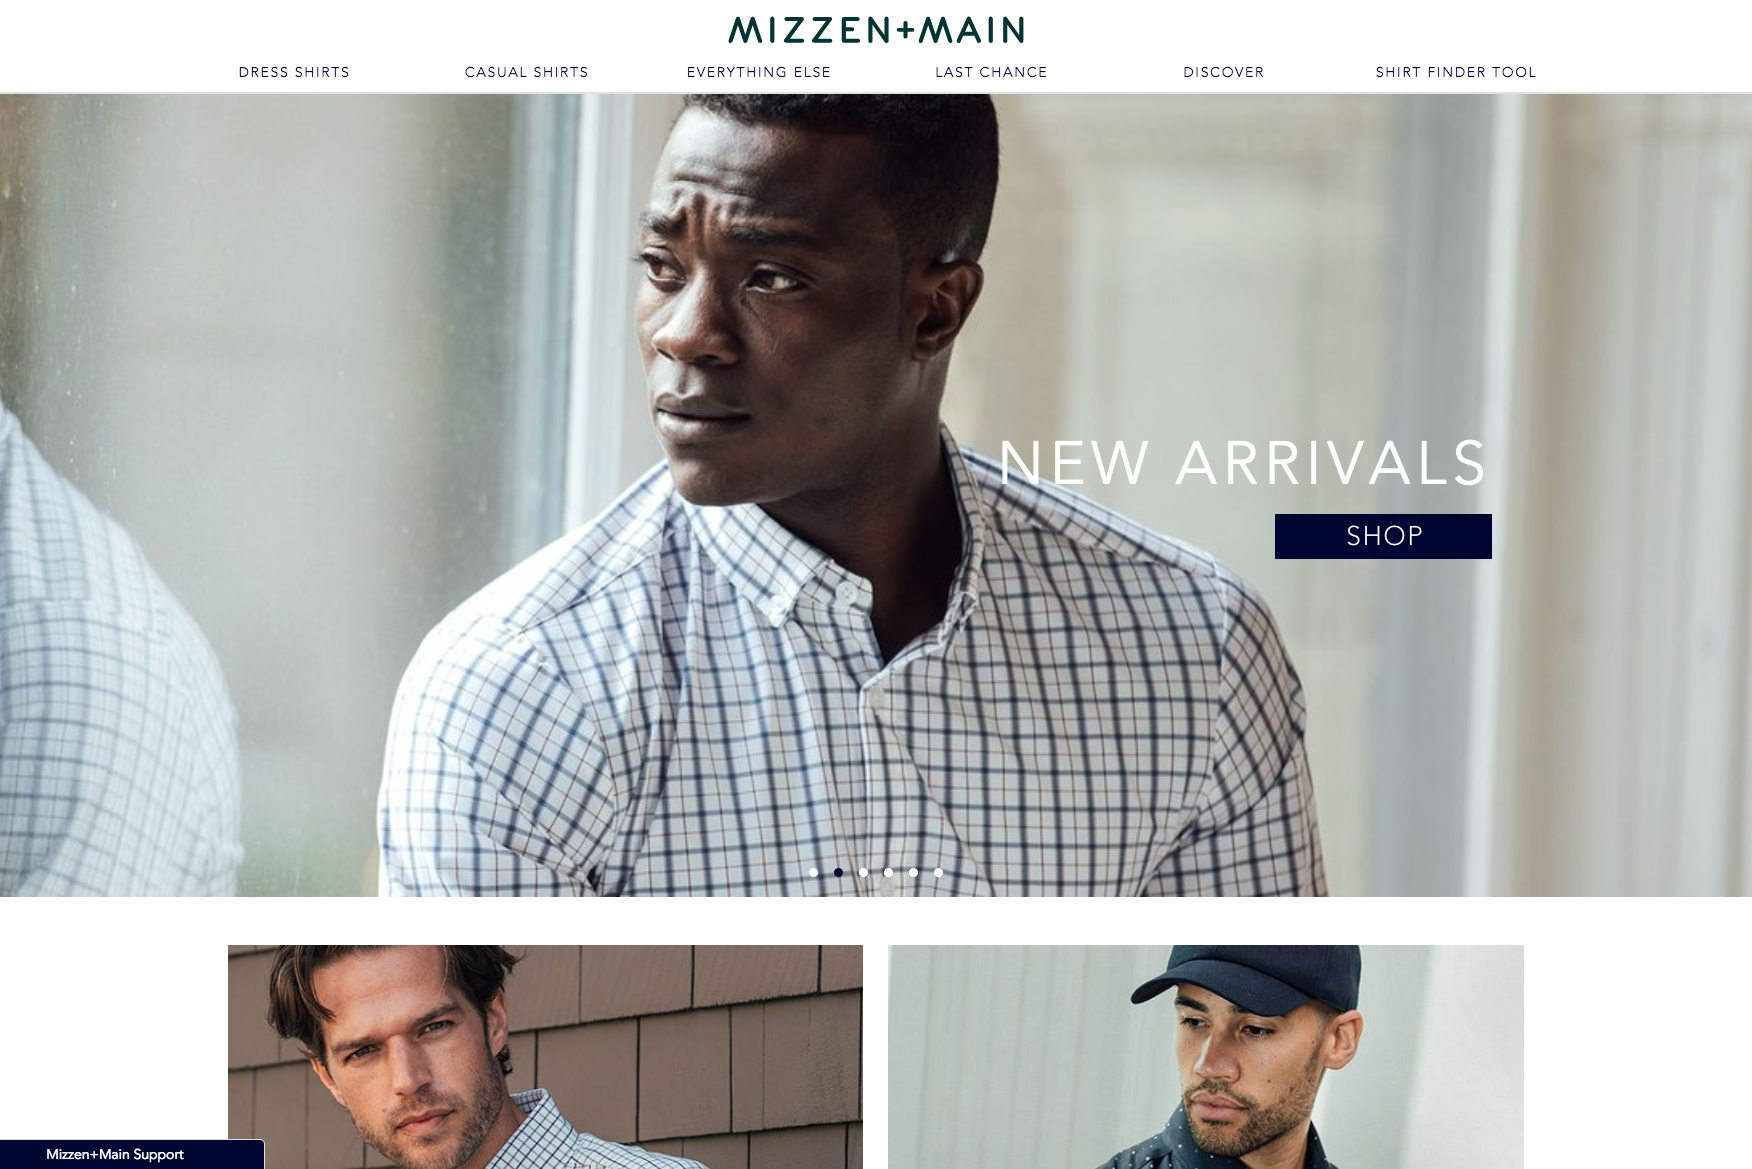 The Mizzen + Main website.